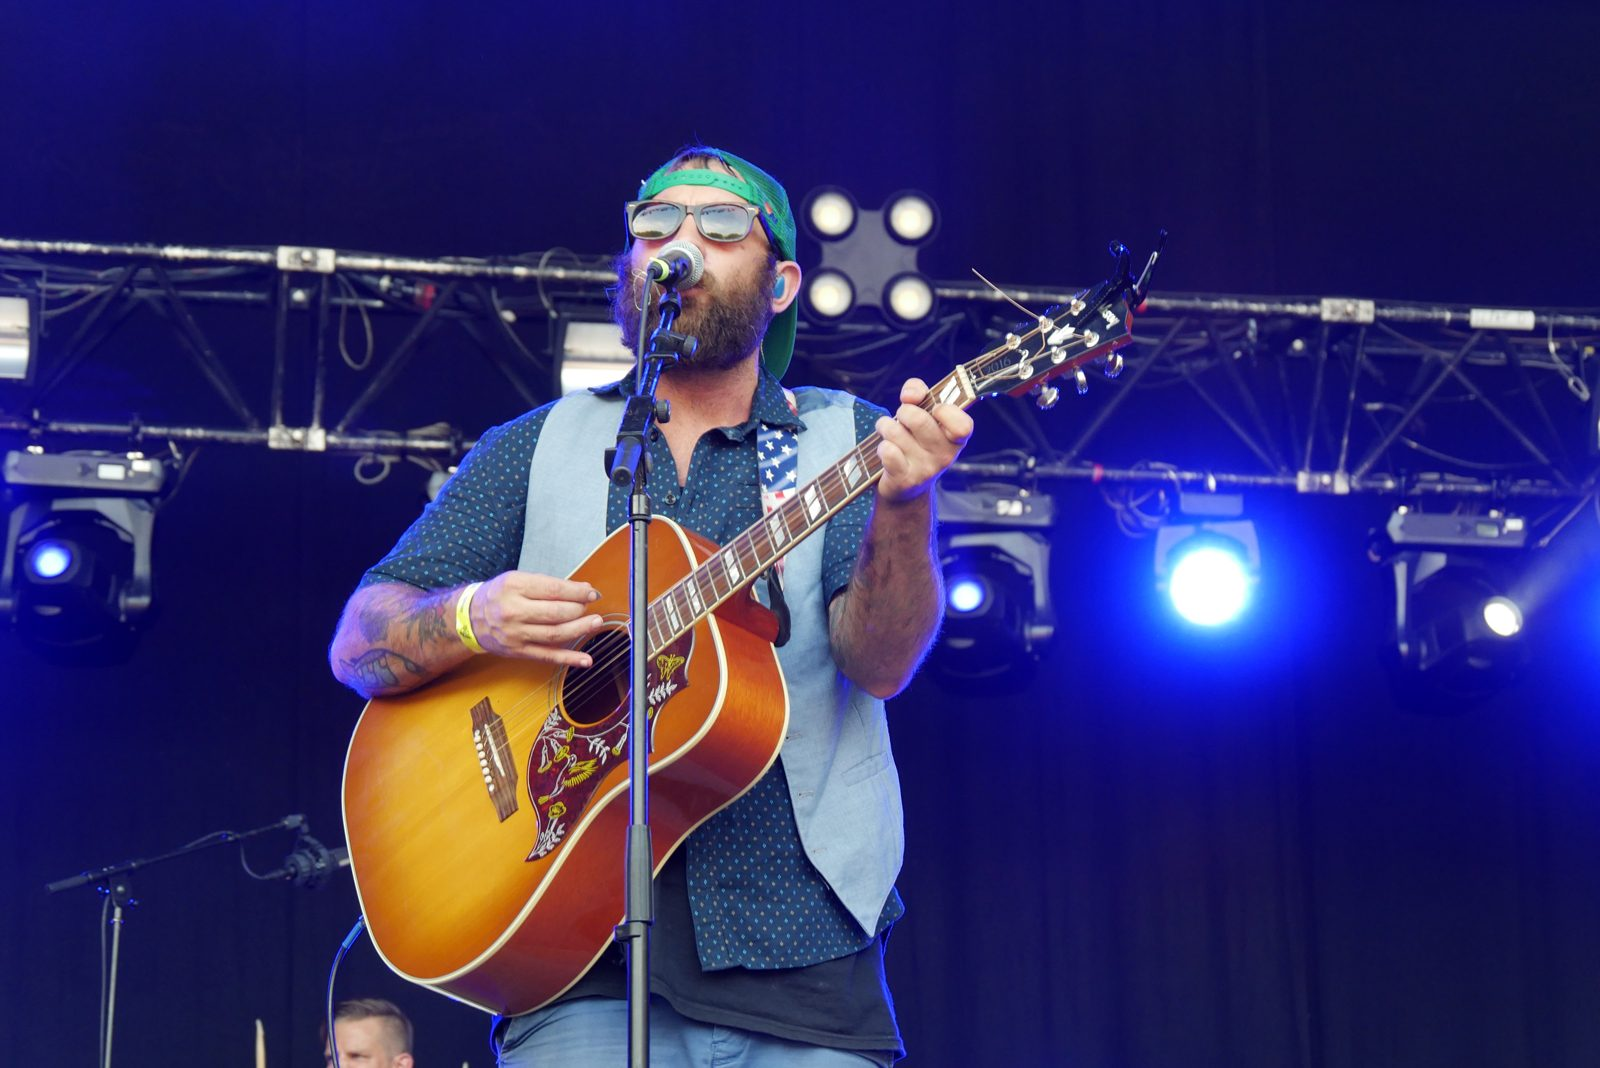 Simon Ward The Strumbellas live concert Rock en Seine 2016 festival paris stage photo usofparis blogjpg